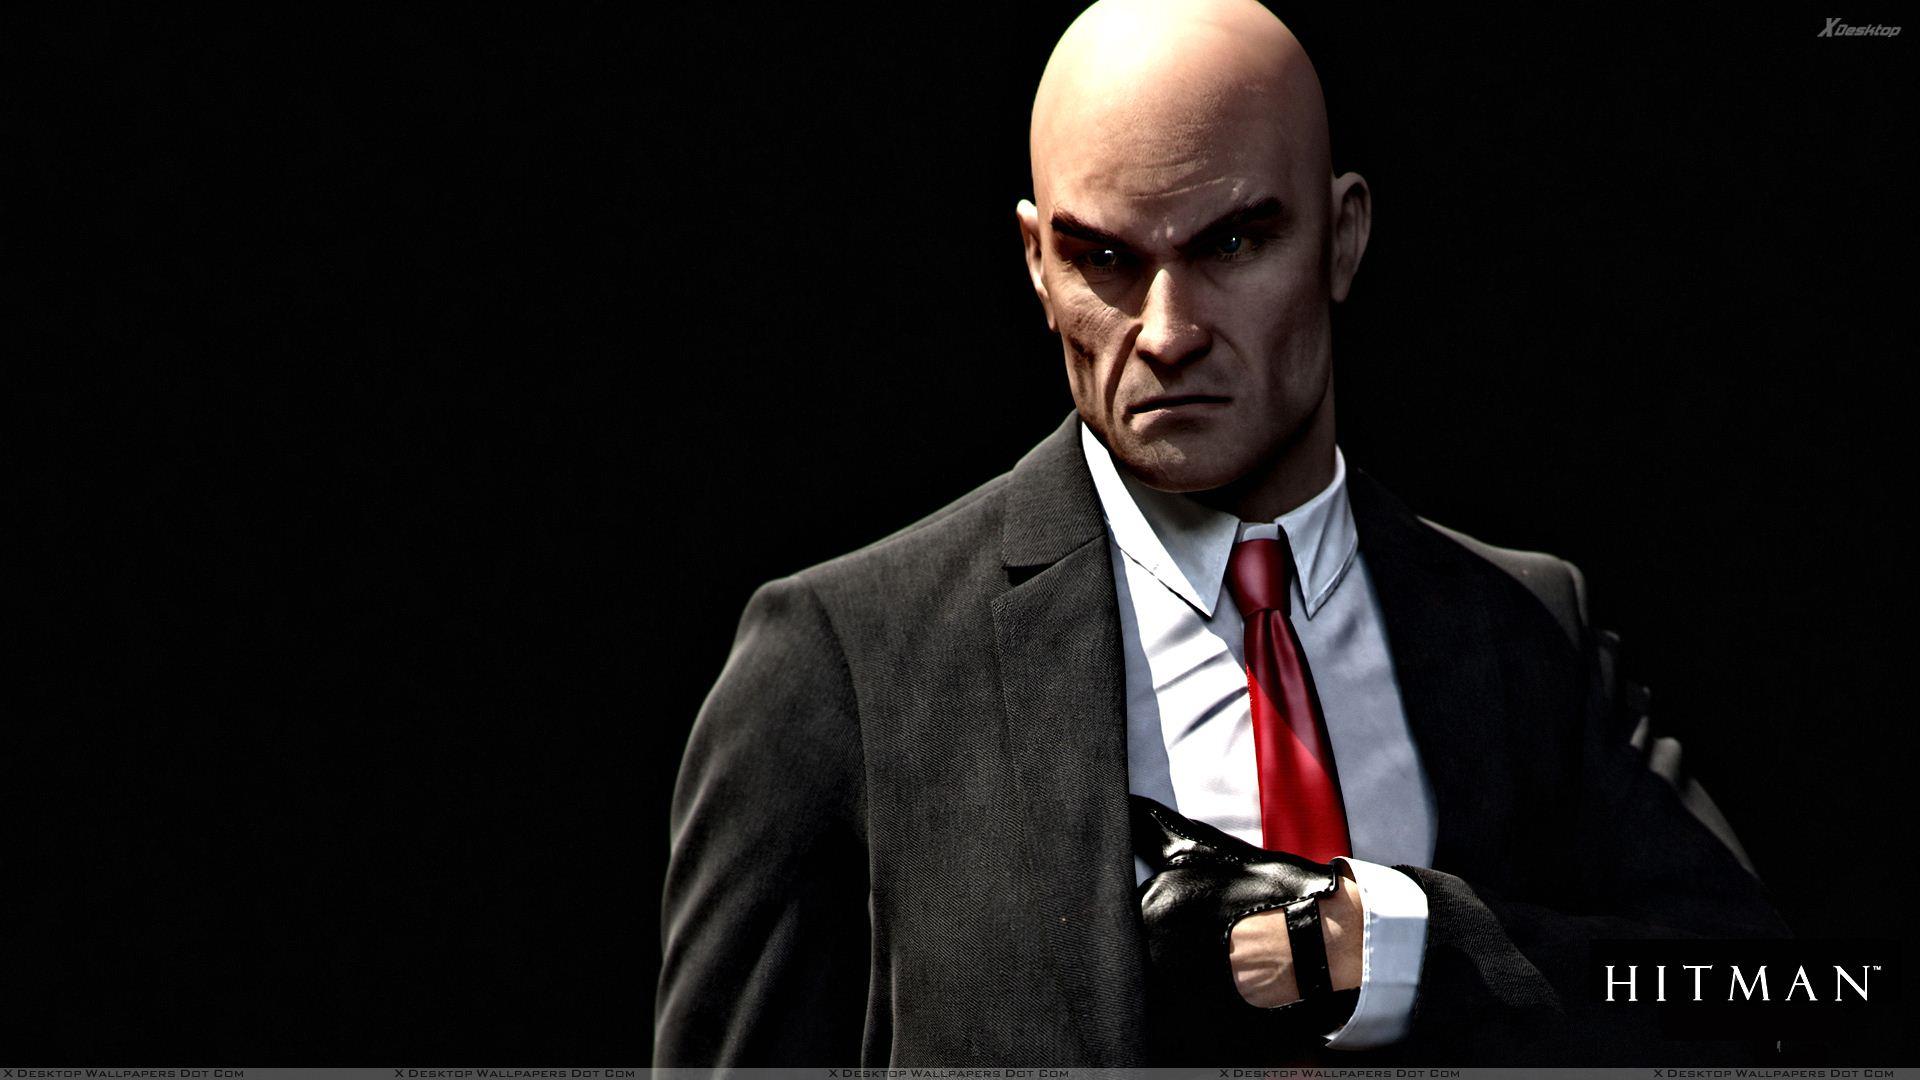 Hitman Absolution Pulling The Gun Out Wallpaper 1920x1080